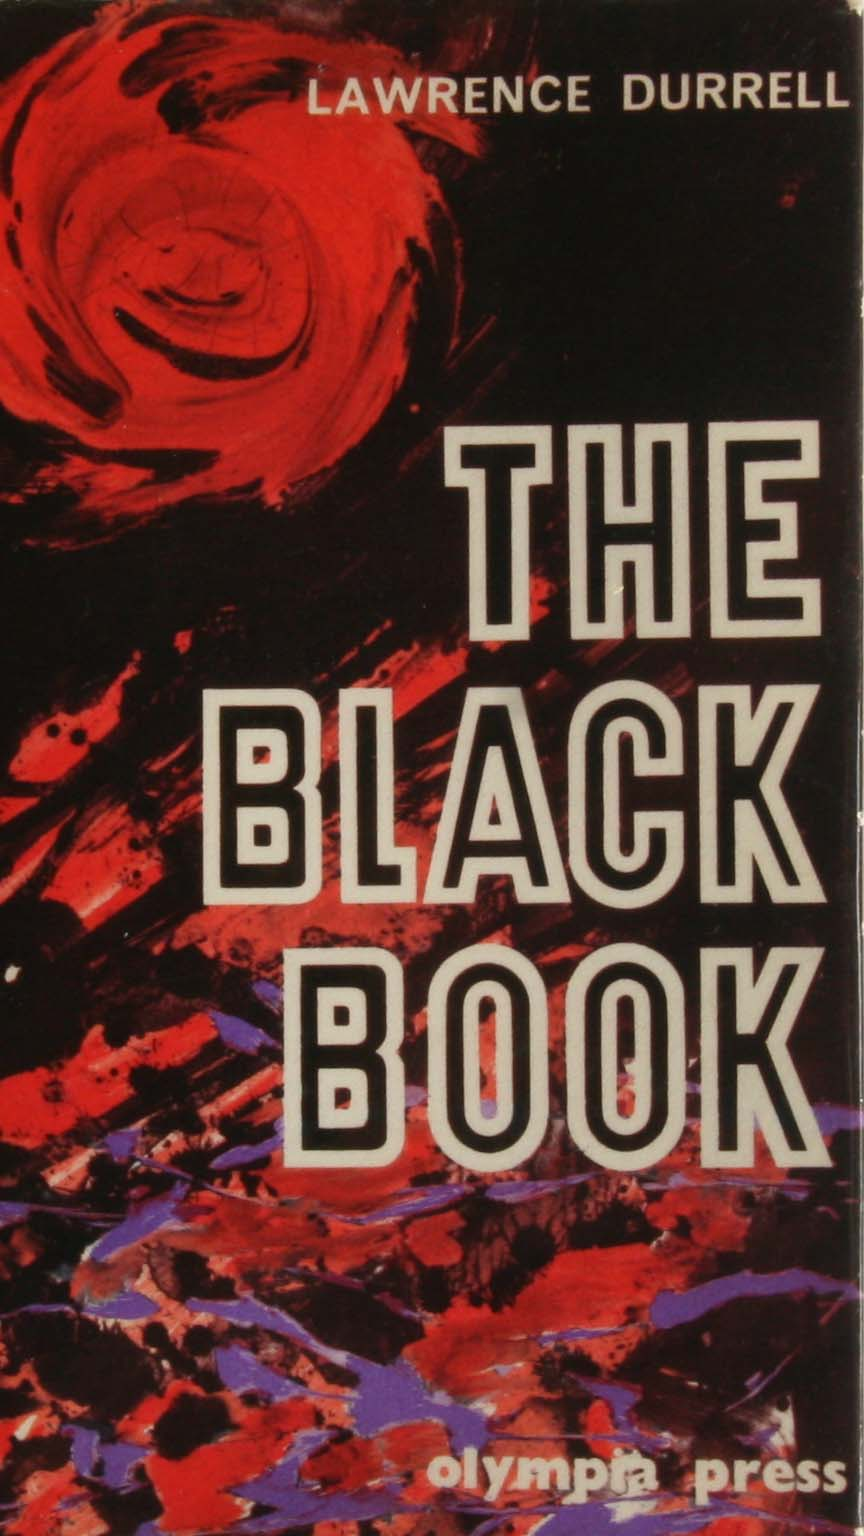 Lawrence Durrell The Black Book